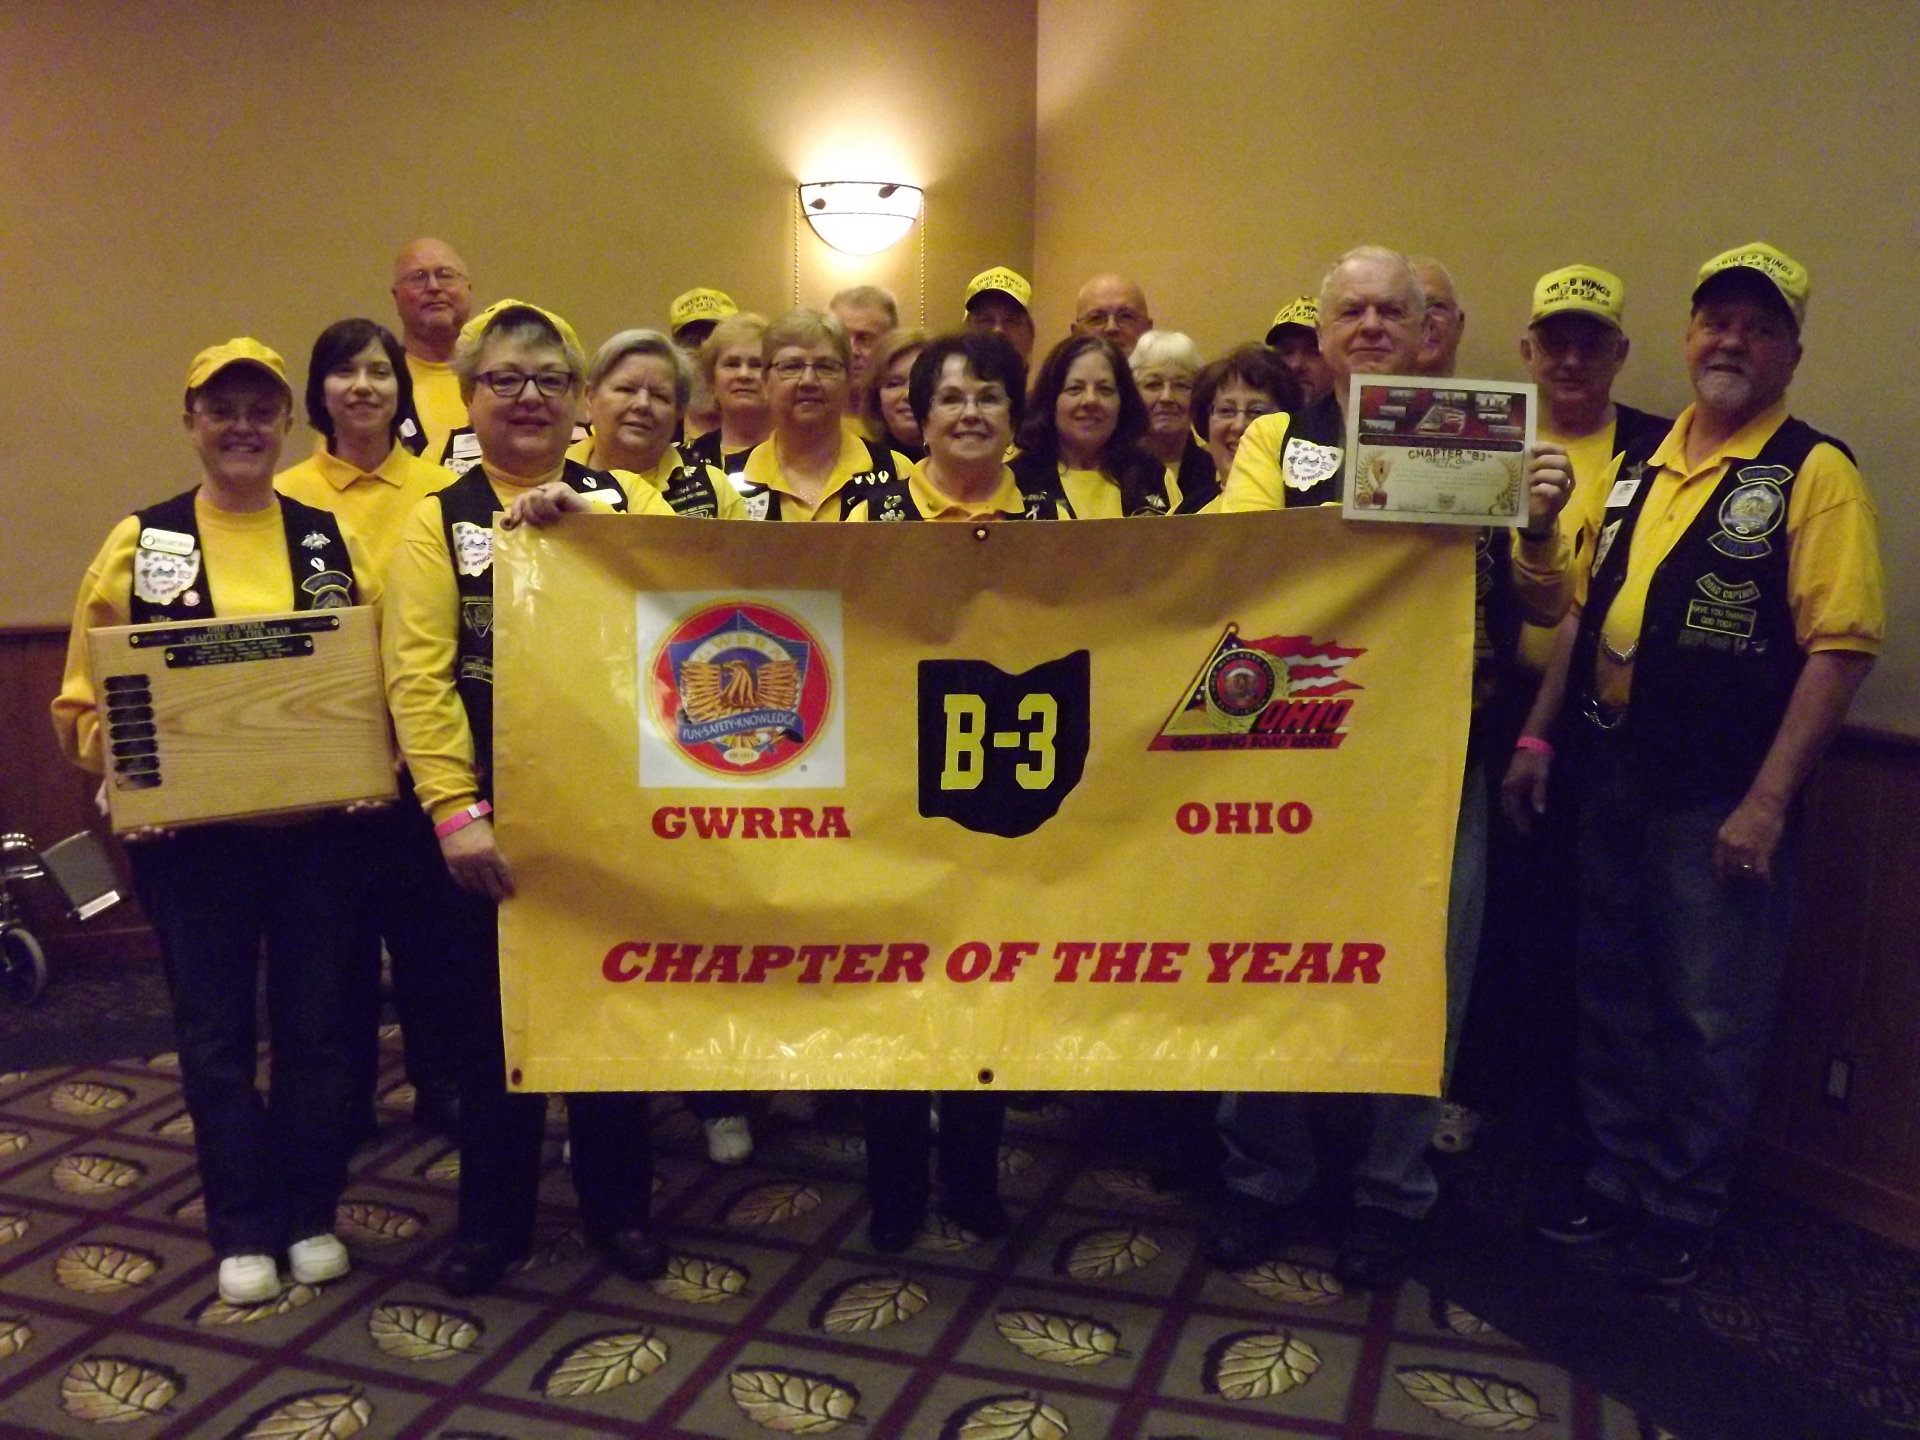 Chapter of the Year for 2013